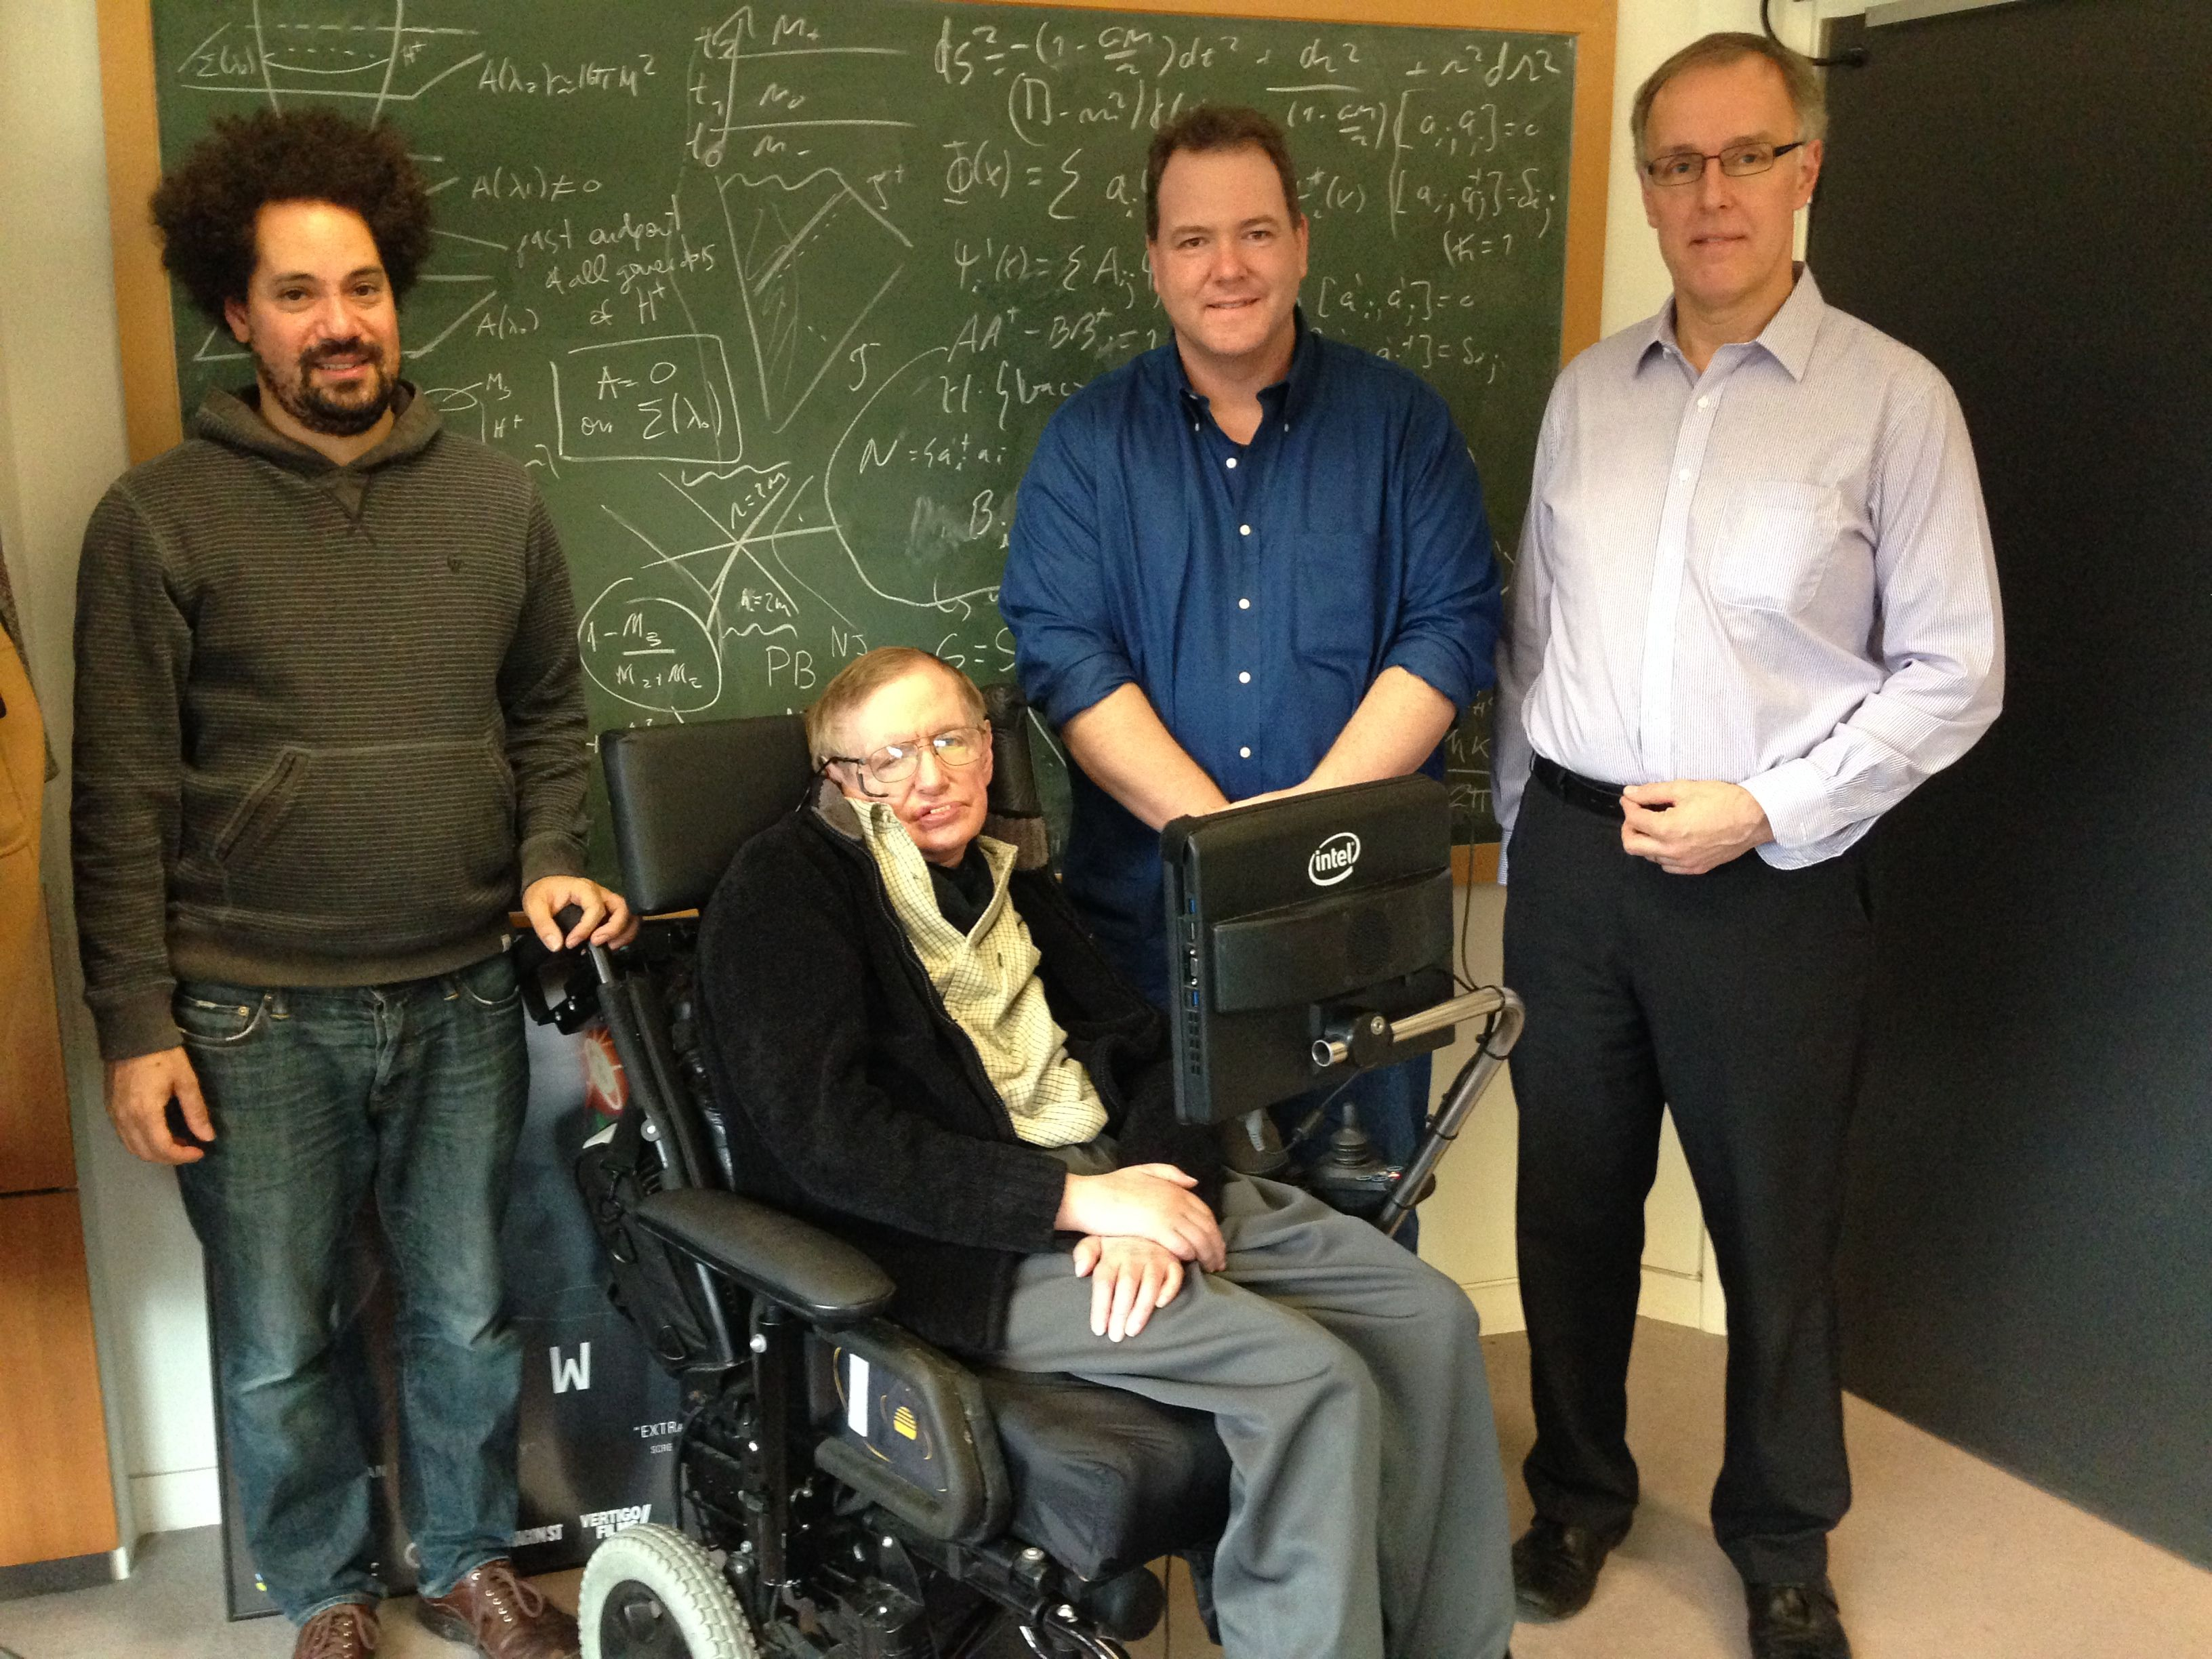 http://simplecore.intel.com/newsroom-fr-fr/wp-content/uploads/sites/22/2014/04/Stephen-Hawking-with-new-computer.jpg